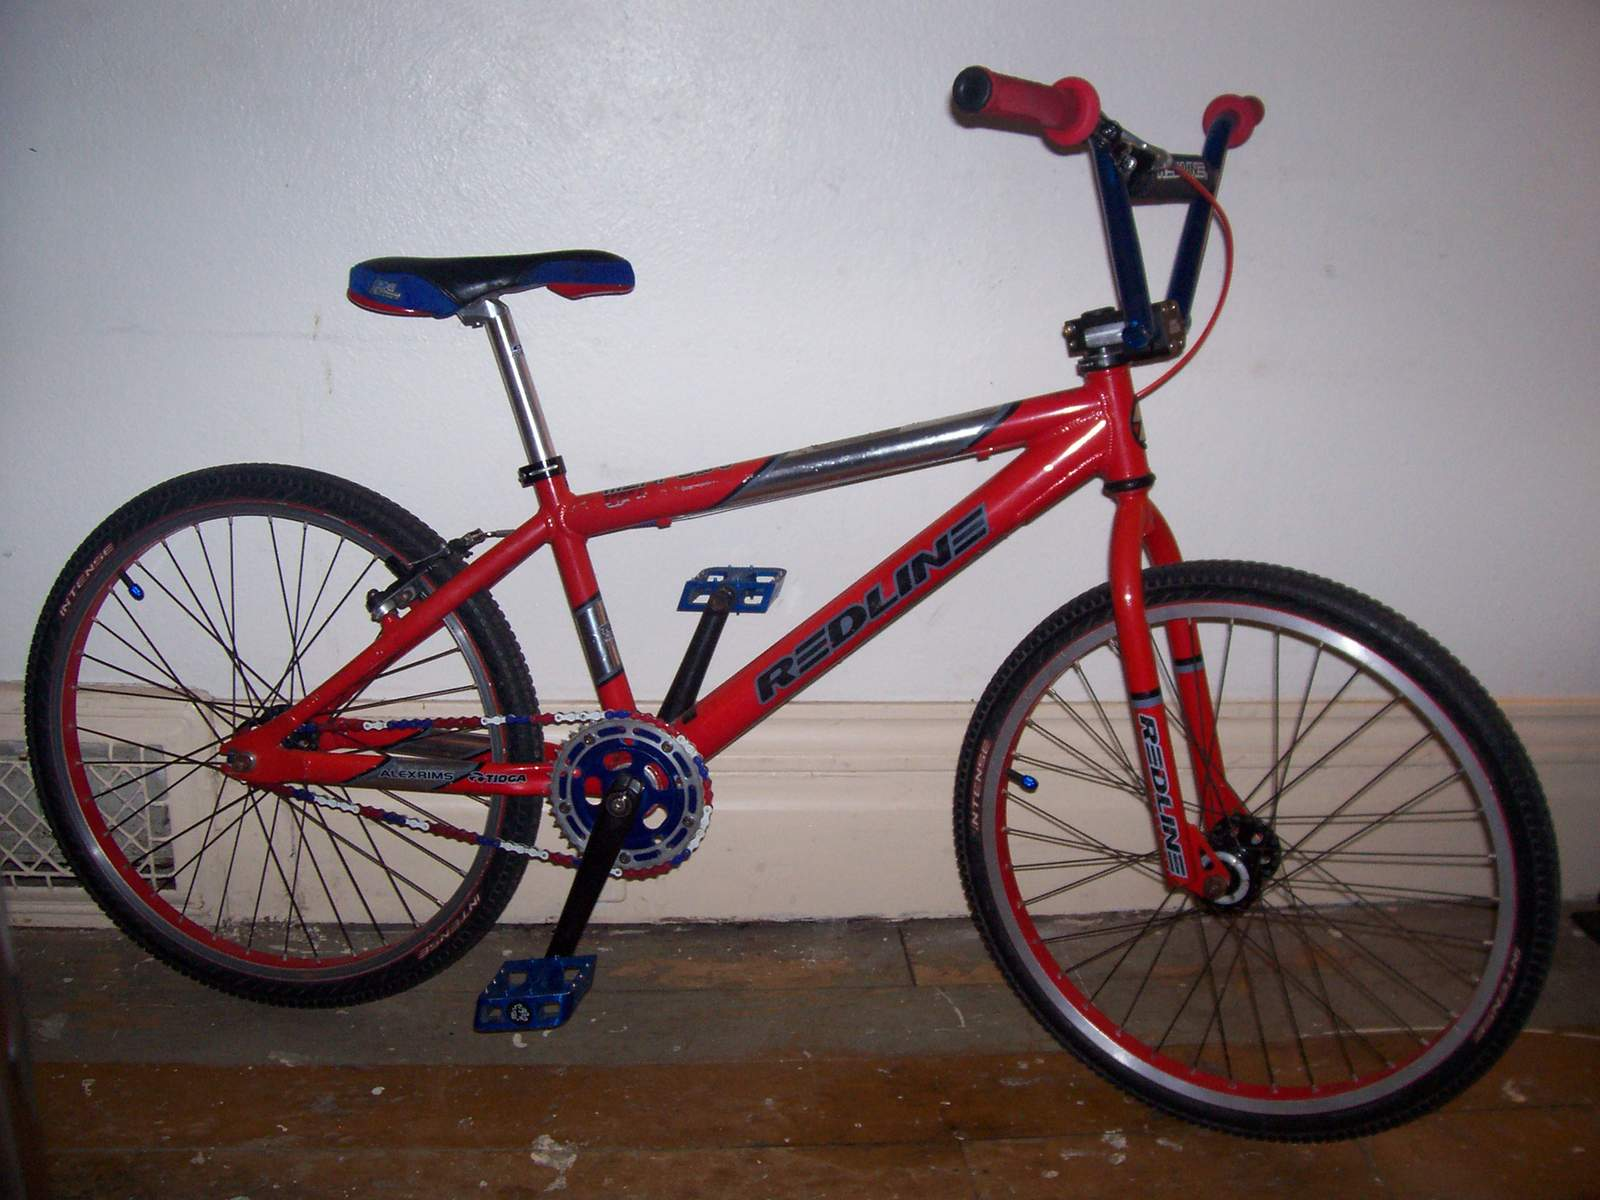 http://uploads.bmxmuseum.com/user-images/61851/100_675458258676df.jpg